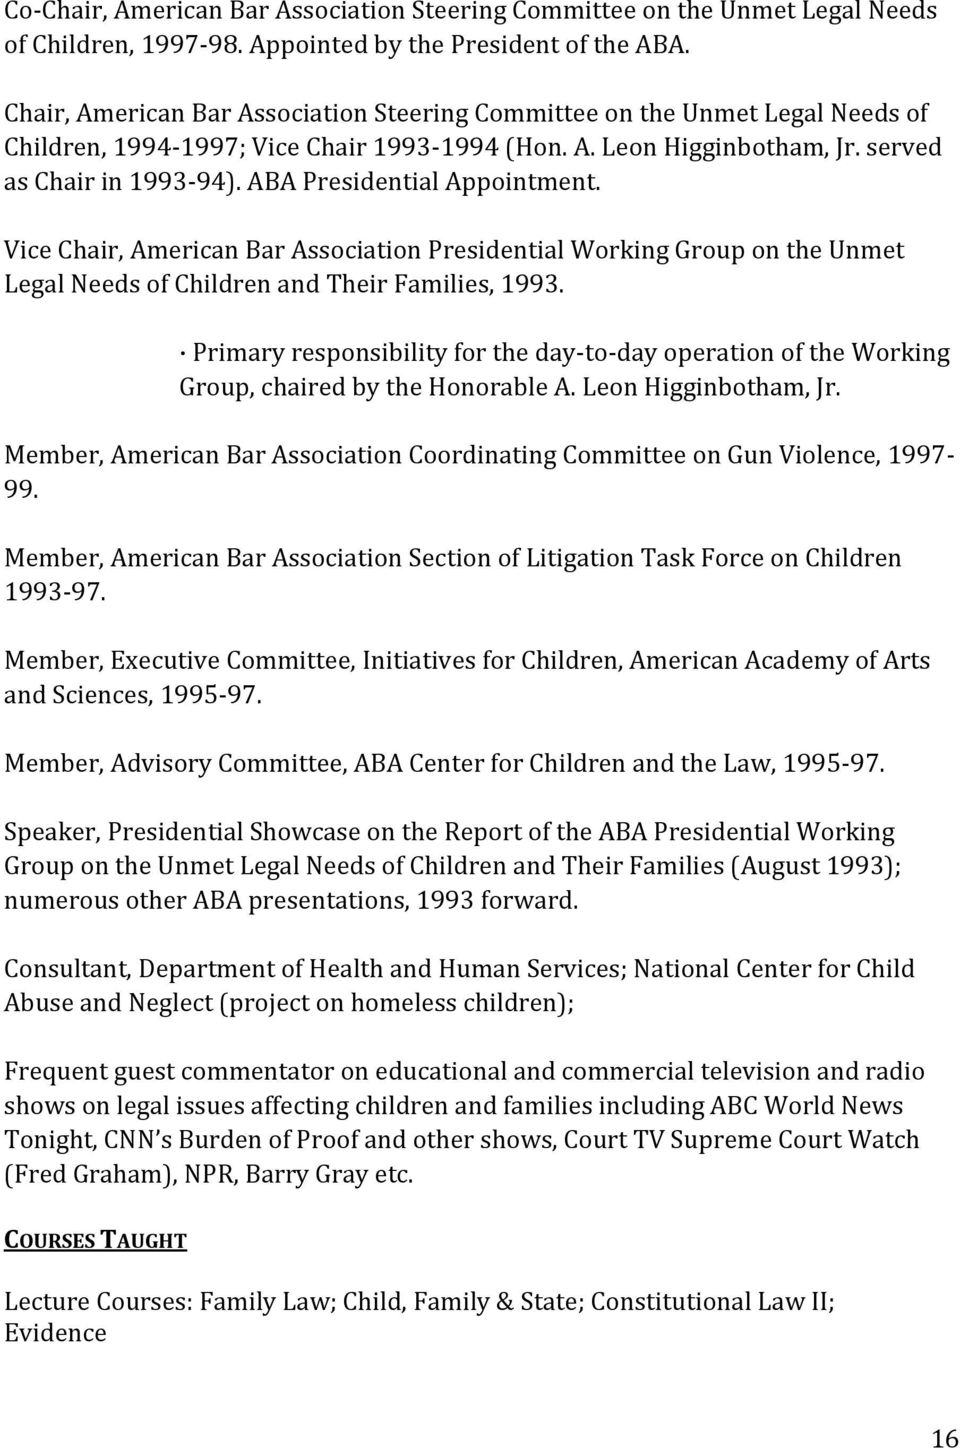 ABA Presidential Appointment. Vice Chair, American Bar Association Presidential Working Group on the Unmet Legal Needs of Children and Their Families, 1993.